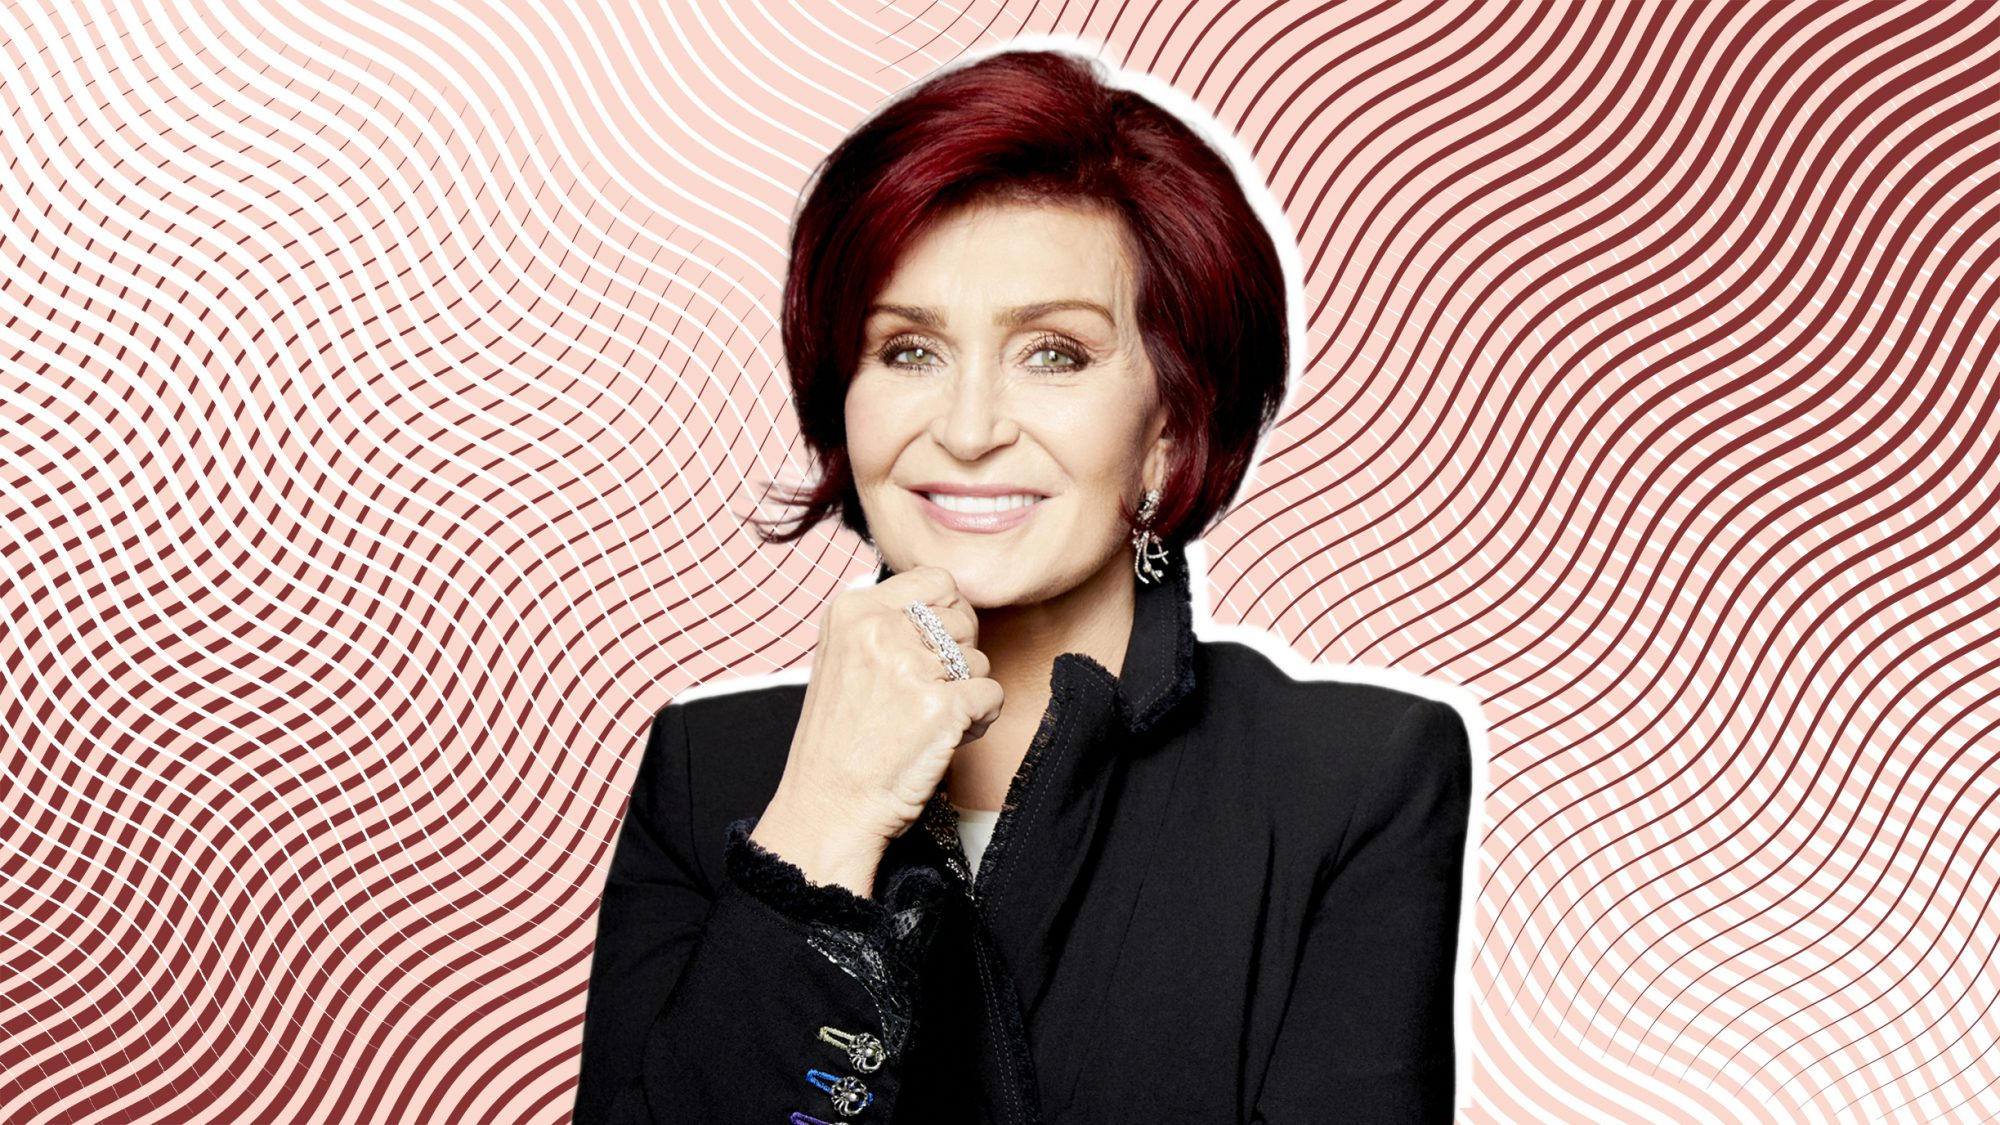 LOS ANGELES - JUNE 19: Sharon Osbourne, host of the CBS series THE TALK, airing Weekdays 2:00-3:00 PM, ET; 1:00-2:00 PM, PT on the CBS Television Network. (Photo by Art Streiber/CBS via Getty Images)